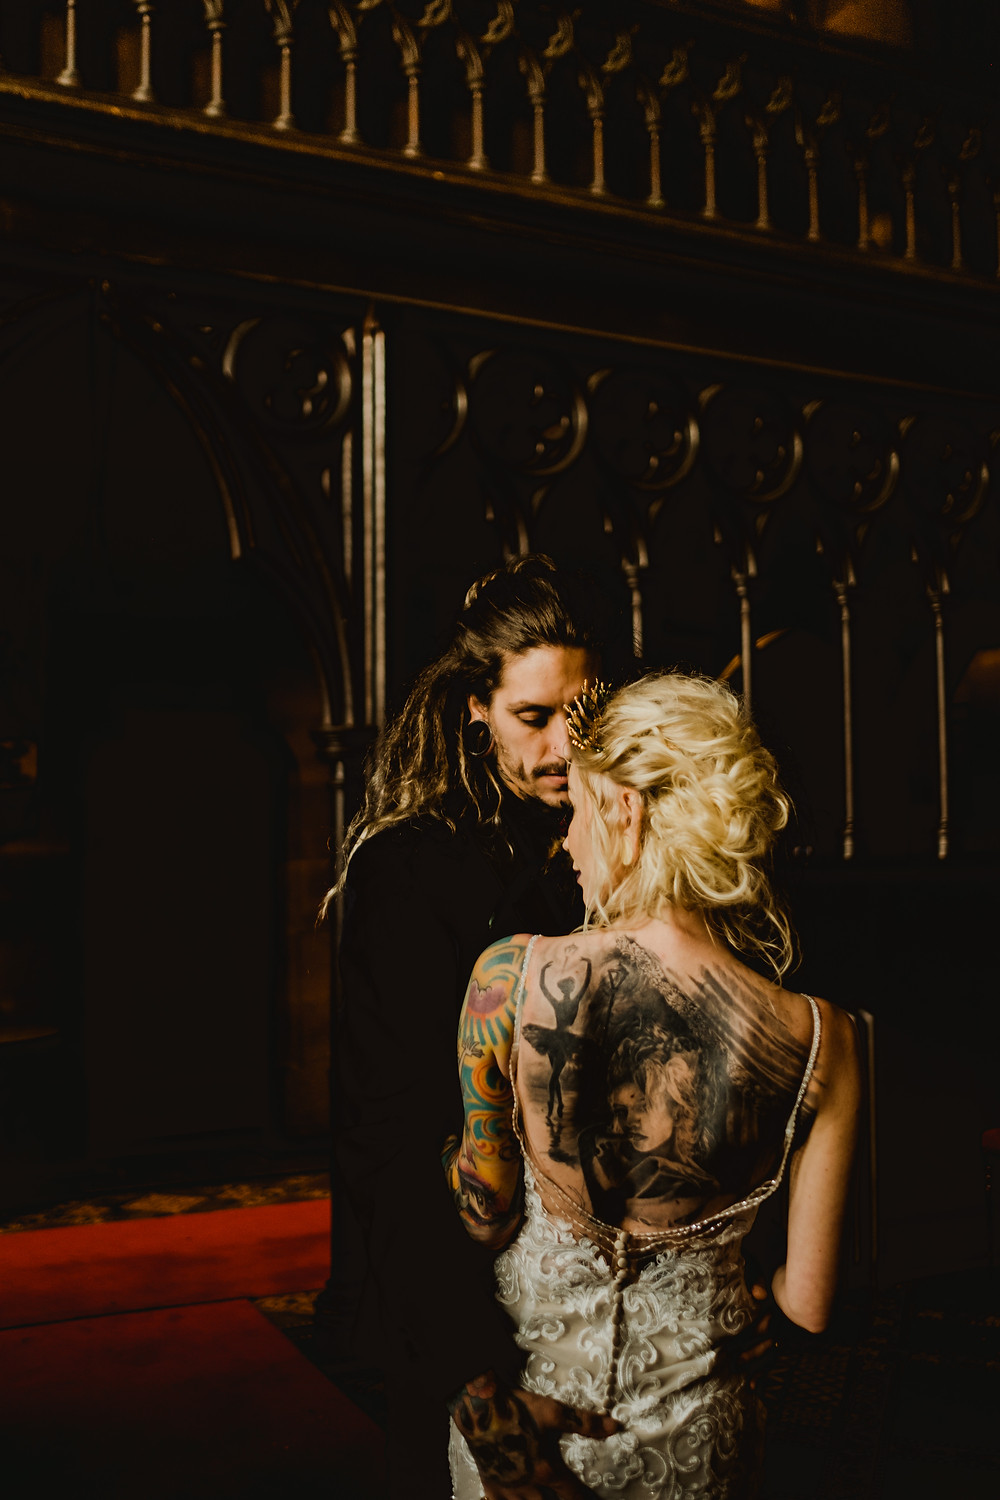 Gothic castle wedding, Cheshire UK. Tattooed bride and groom. Essence of Australia wedding dress from Cheadle Bride. Gold wedding crown. Gold bridal crown. Cheshire wedding accessories.